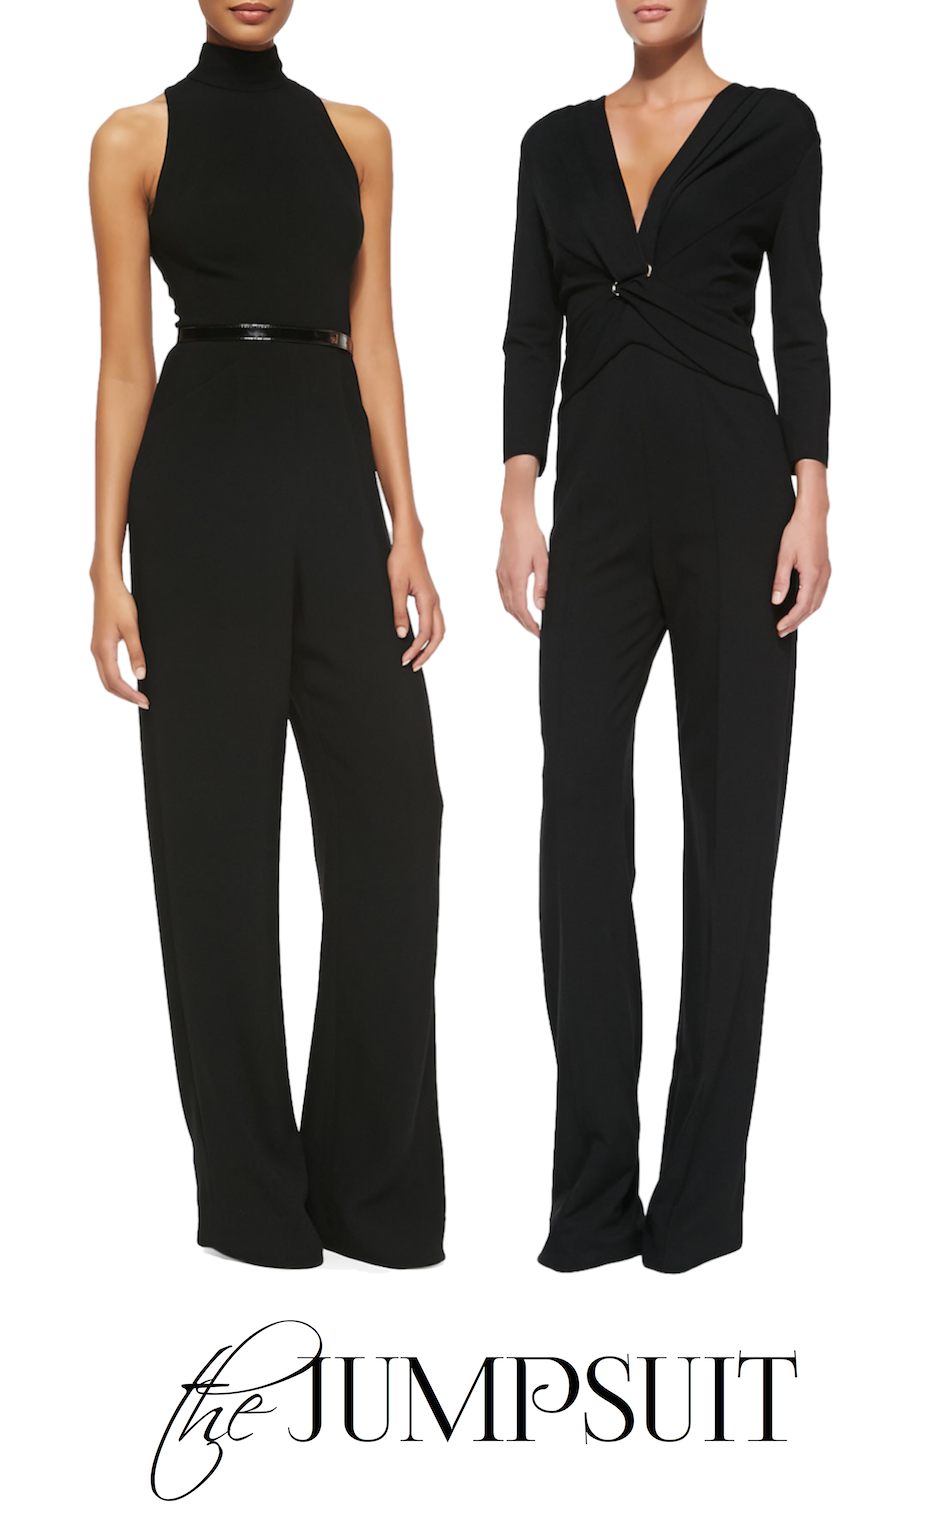 e34f1be1e3e The jumpsuit was a major trend on the runways for the Fall 2014 season.  There is an effortless ease of wearing a jumpsuit....it s one piece